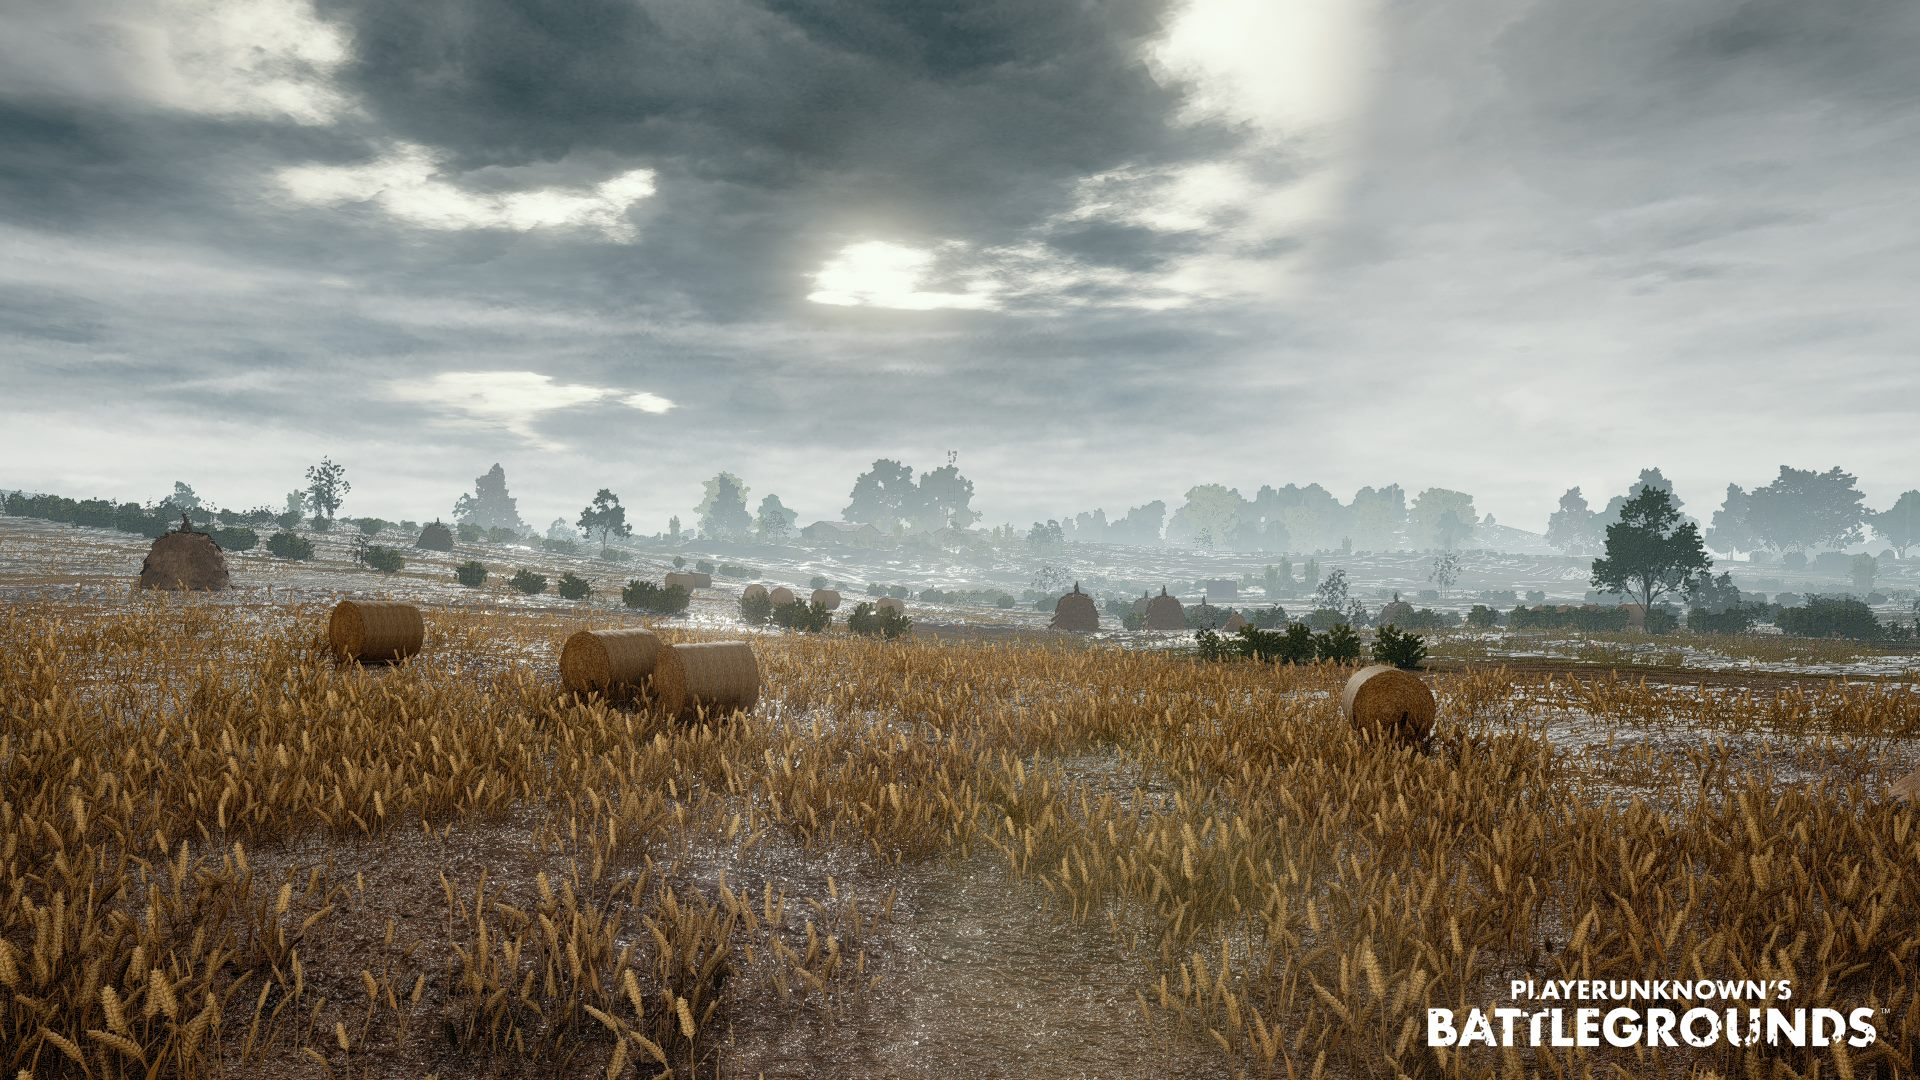 Pubg Wallpapers Phone Playerunknown S Battlegrounds Backgrounds